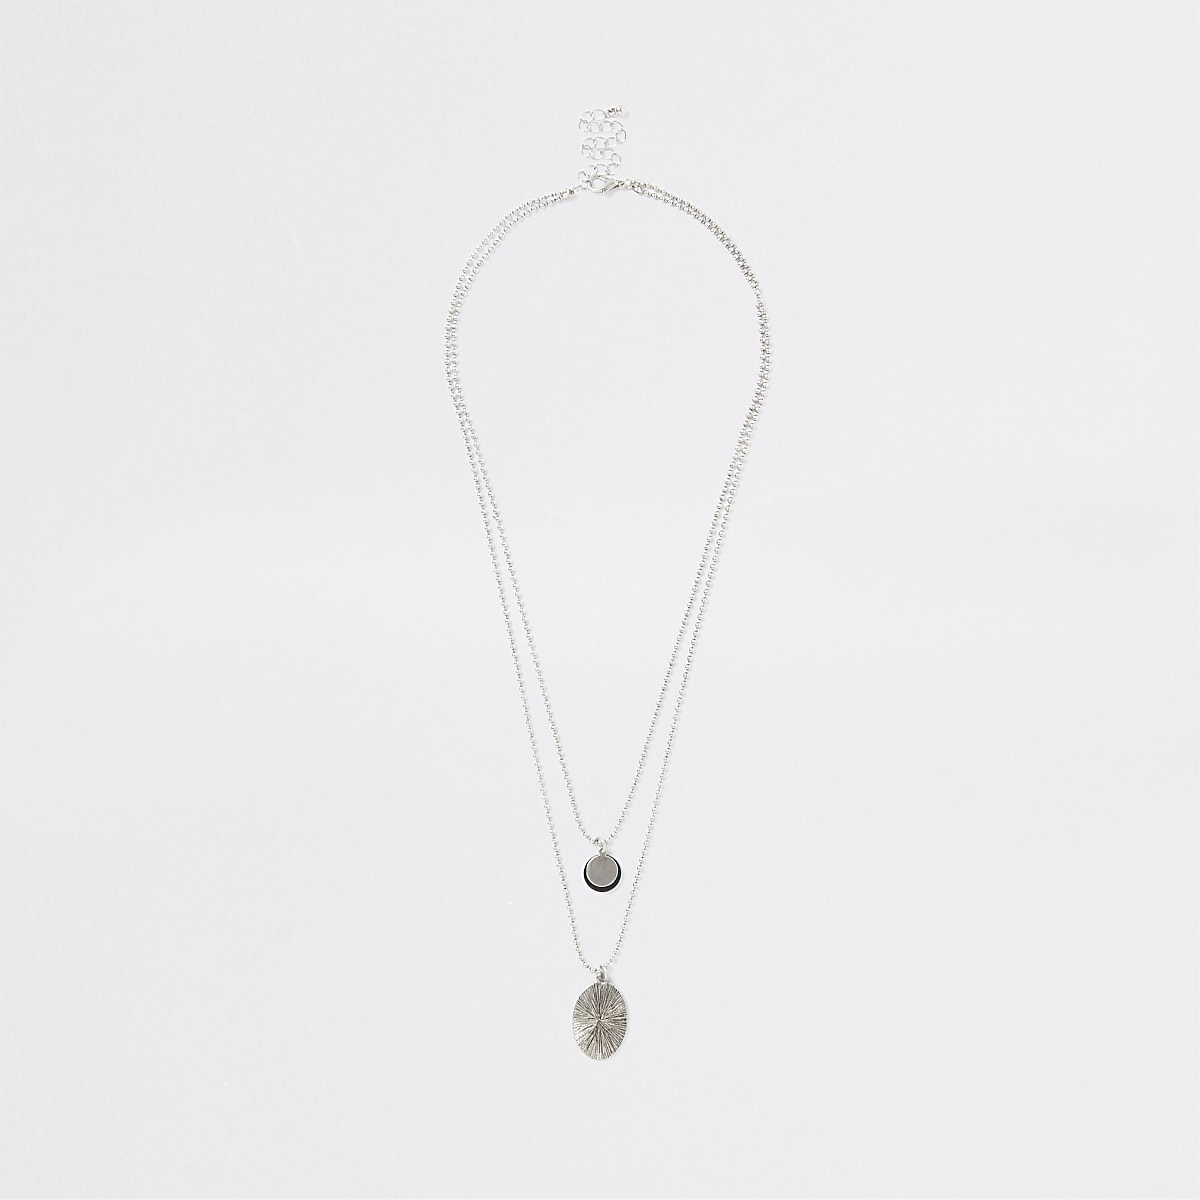 Silver color layered necklace